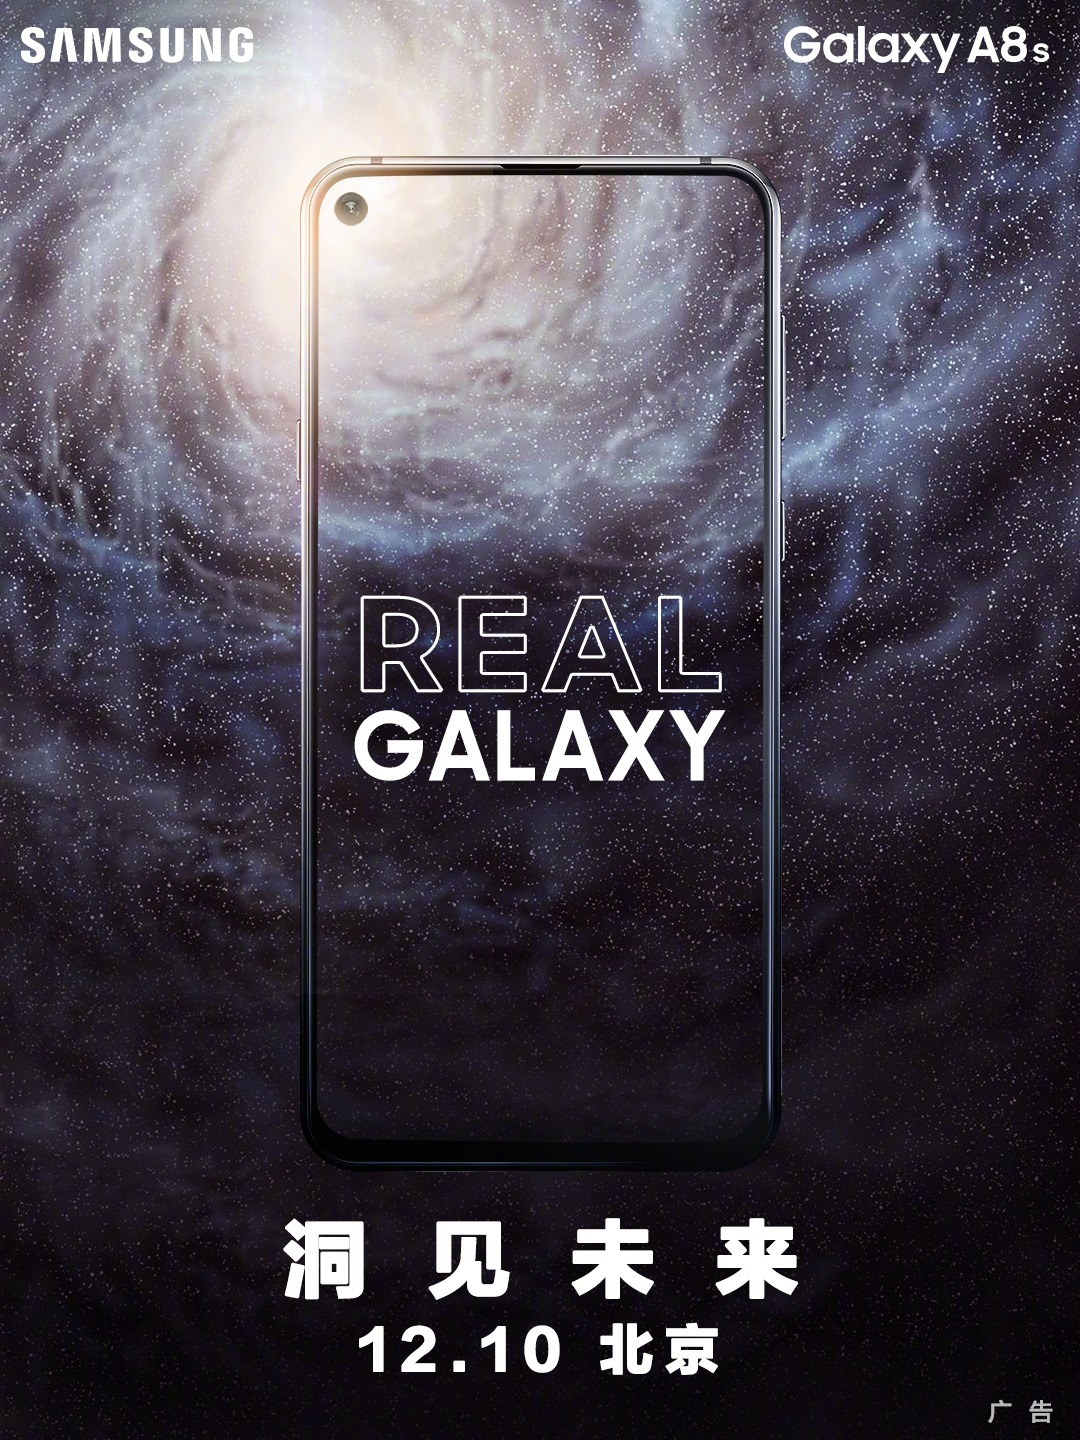 Samsung Galaxy A8s is launching on December 10